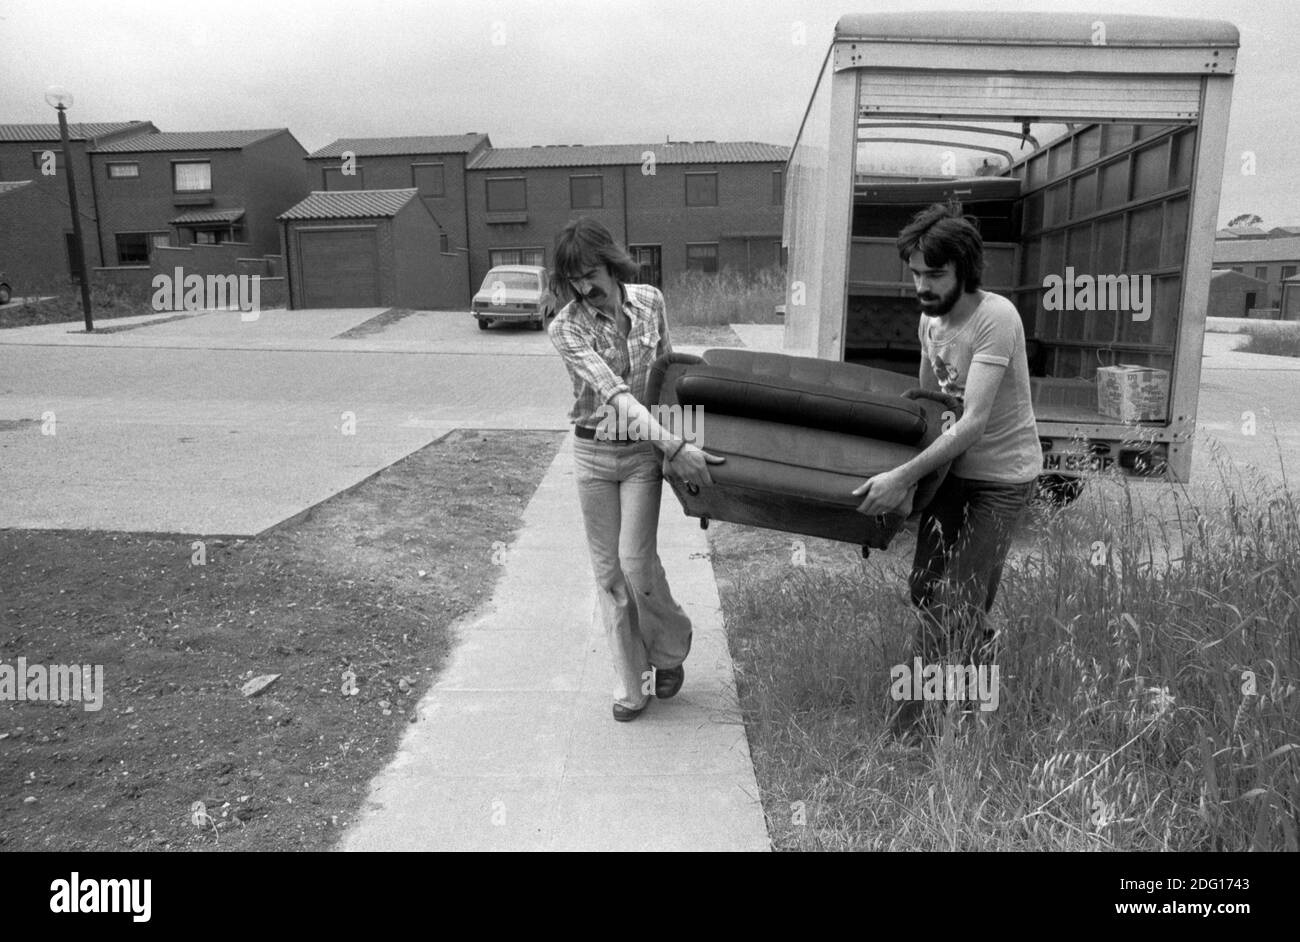 Moving house, removal men carrying furniture into a new family home. 1977. 1970s UK HOMER SYKES Stock Photo